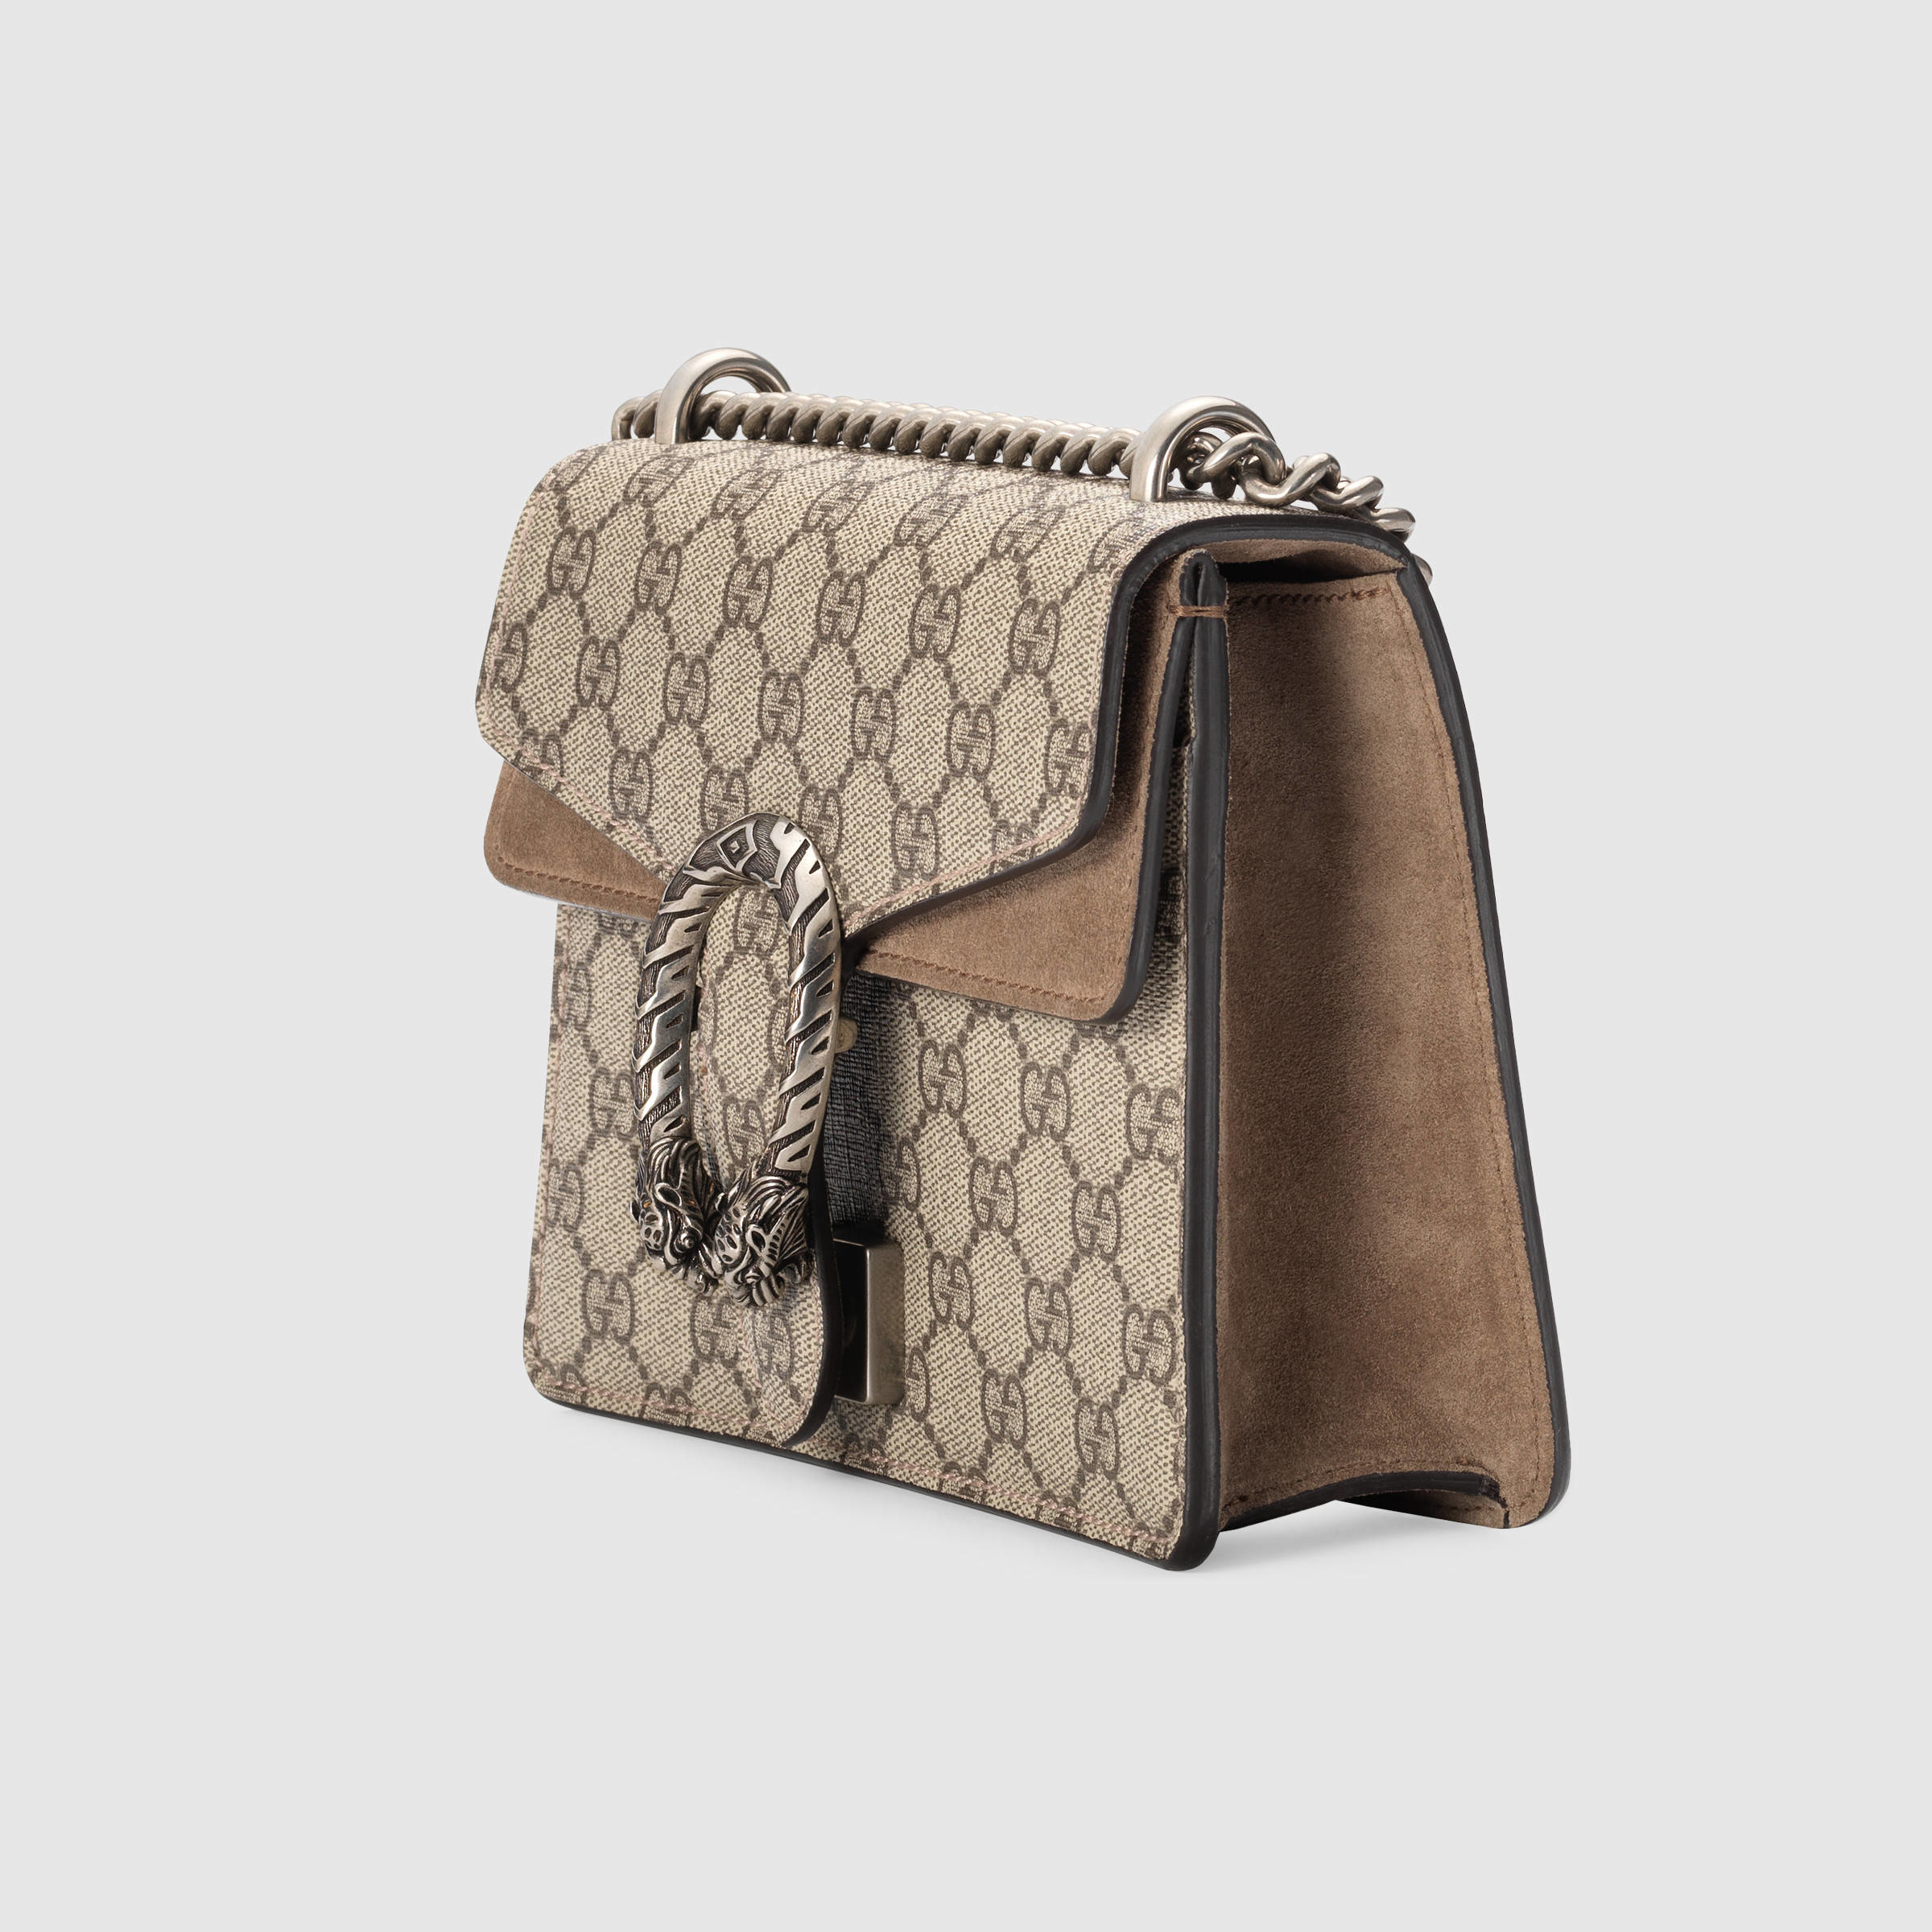 a2a1e94b329c Gucci Dionysus GG Supreme Canvas And Suede Shoulder Bag in Gray